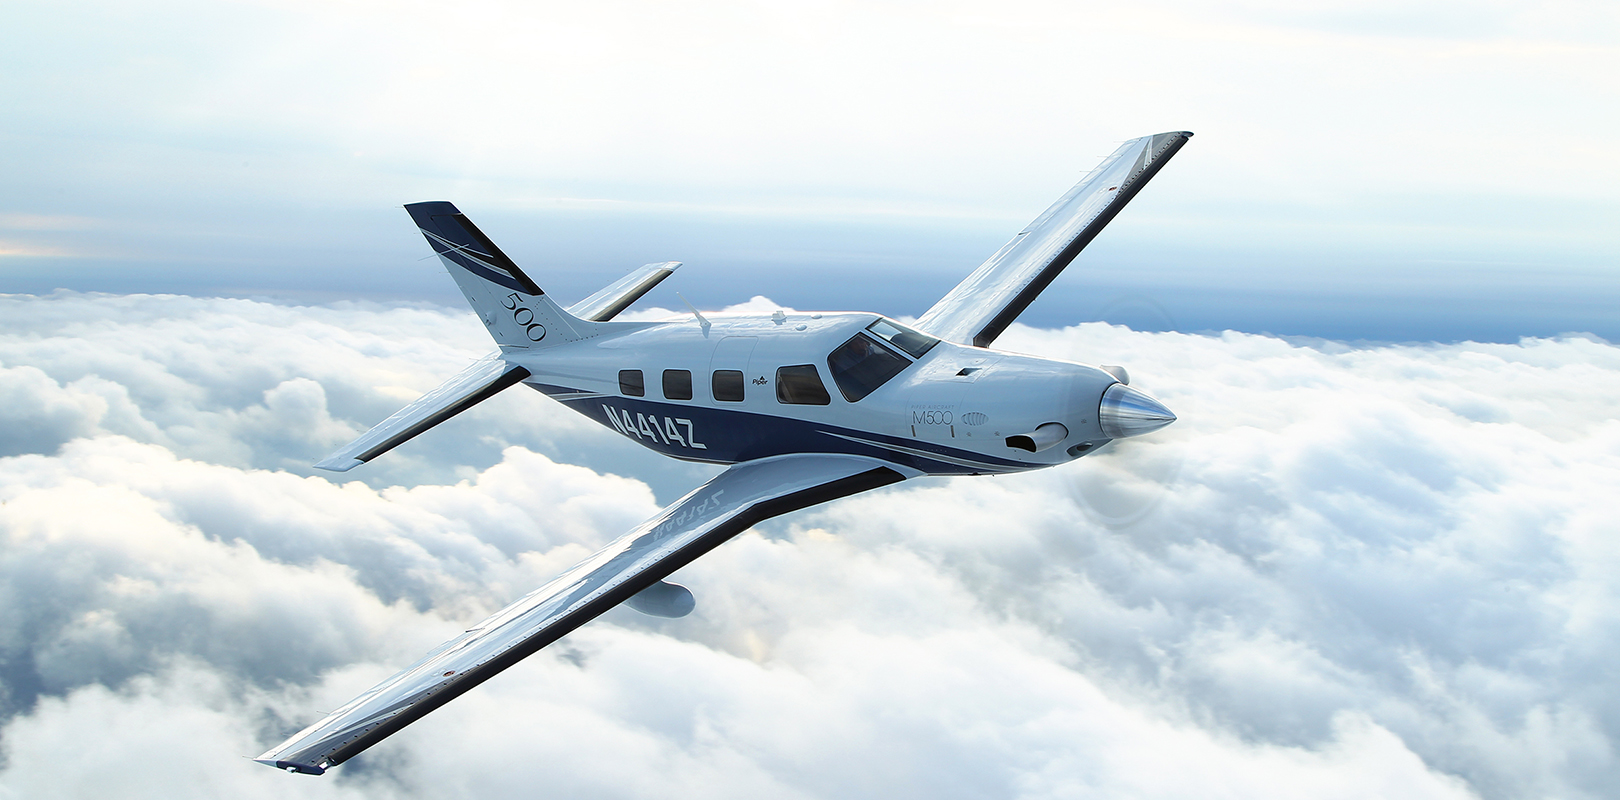 Maintenance - General Aviation - Service centre recognition from